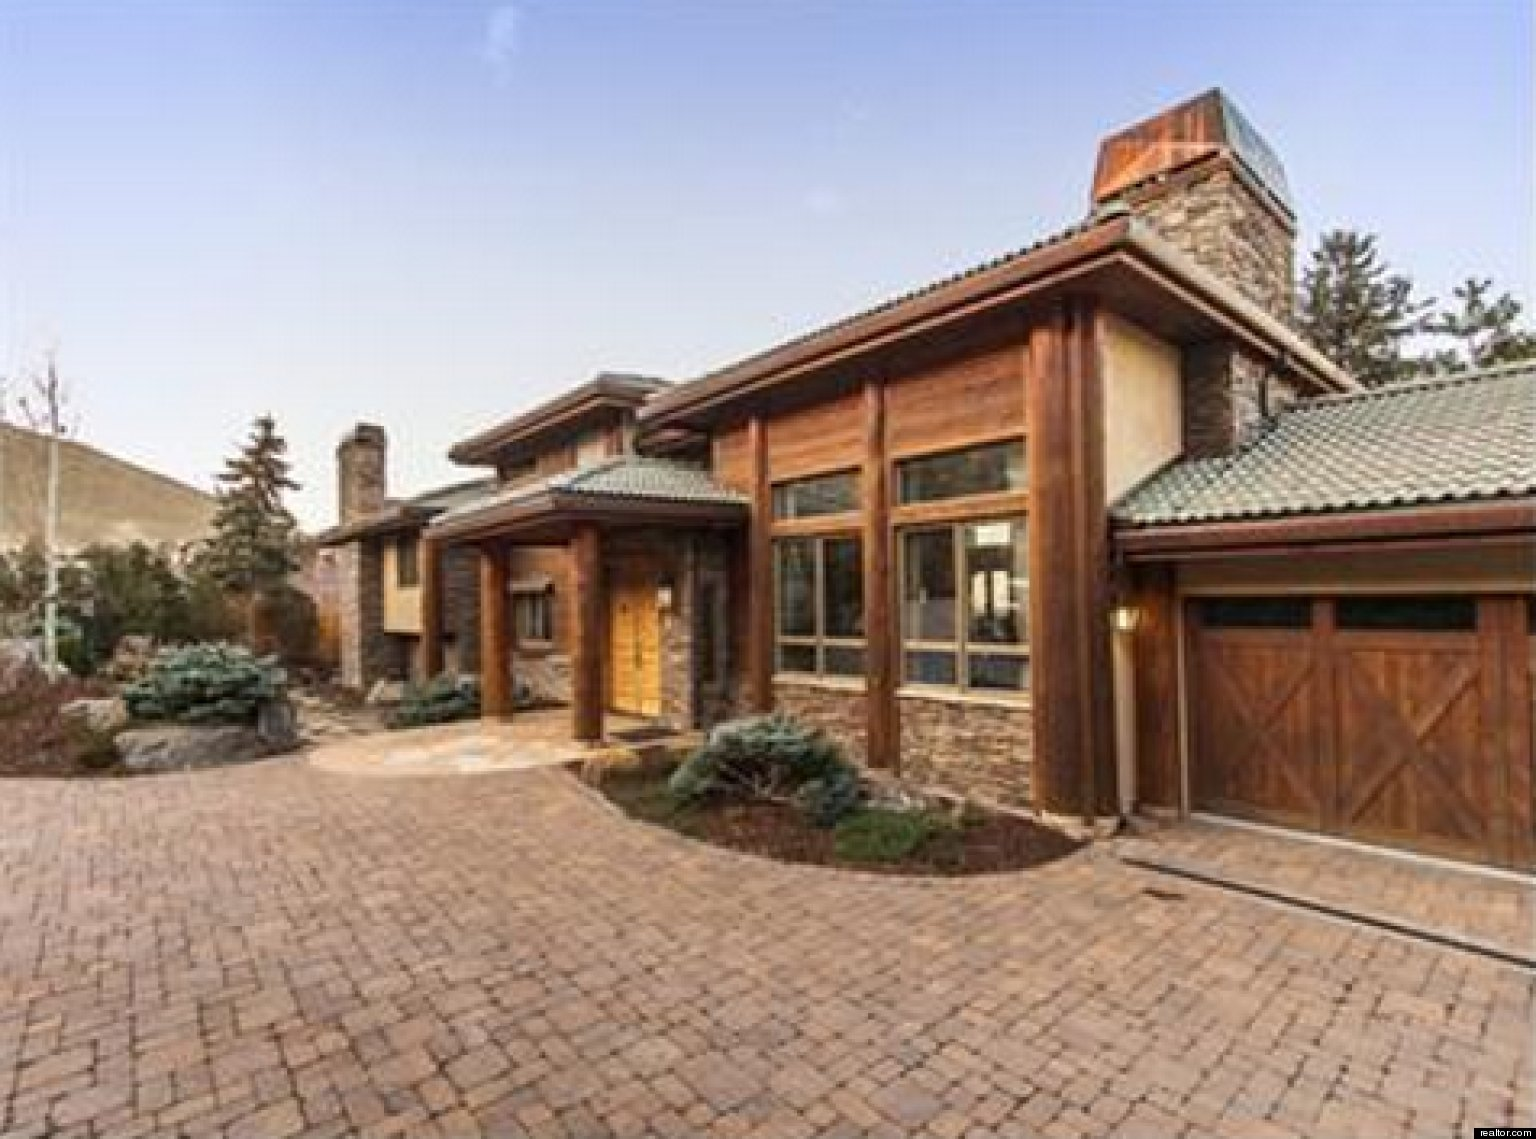 Top 10 Most Expensive Homes In Boulder Colo 2013